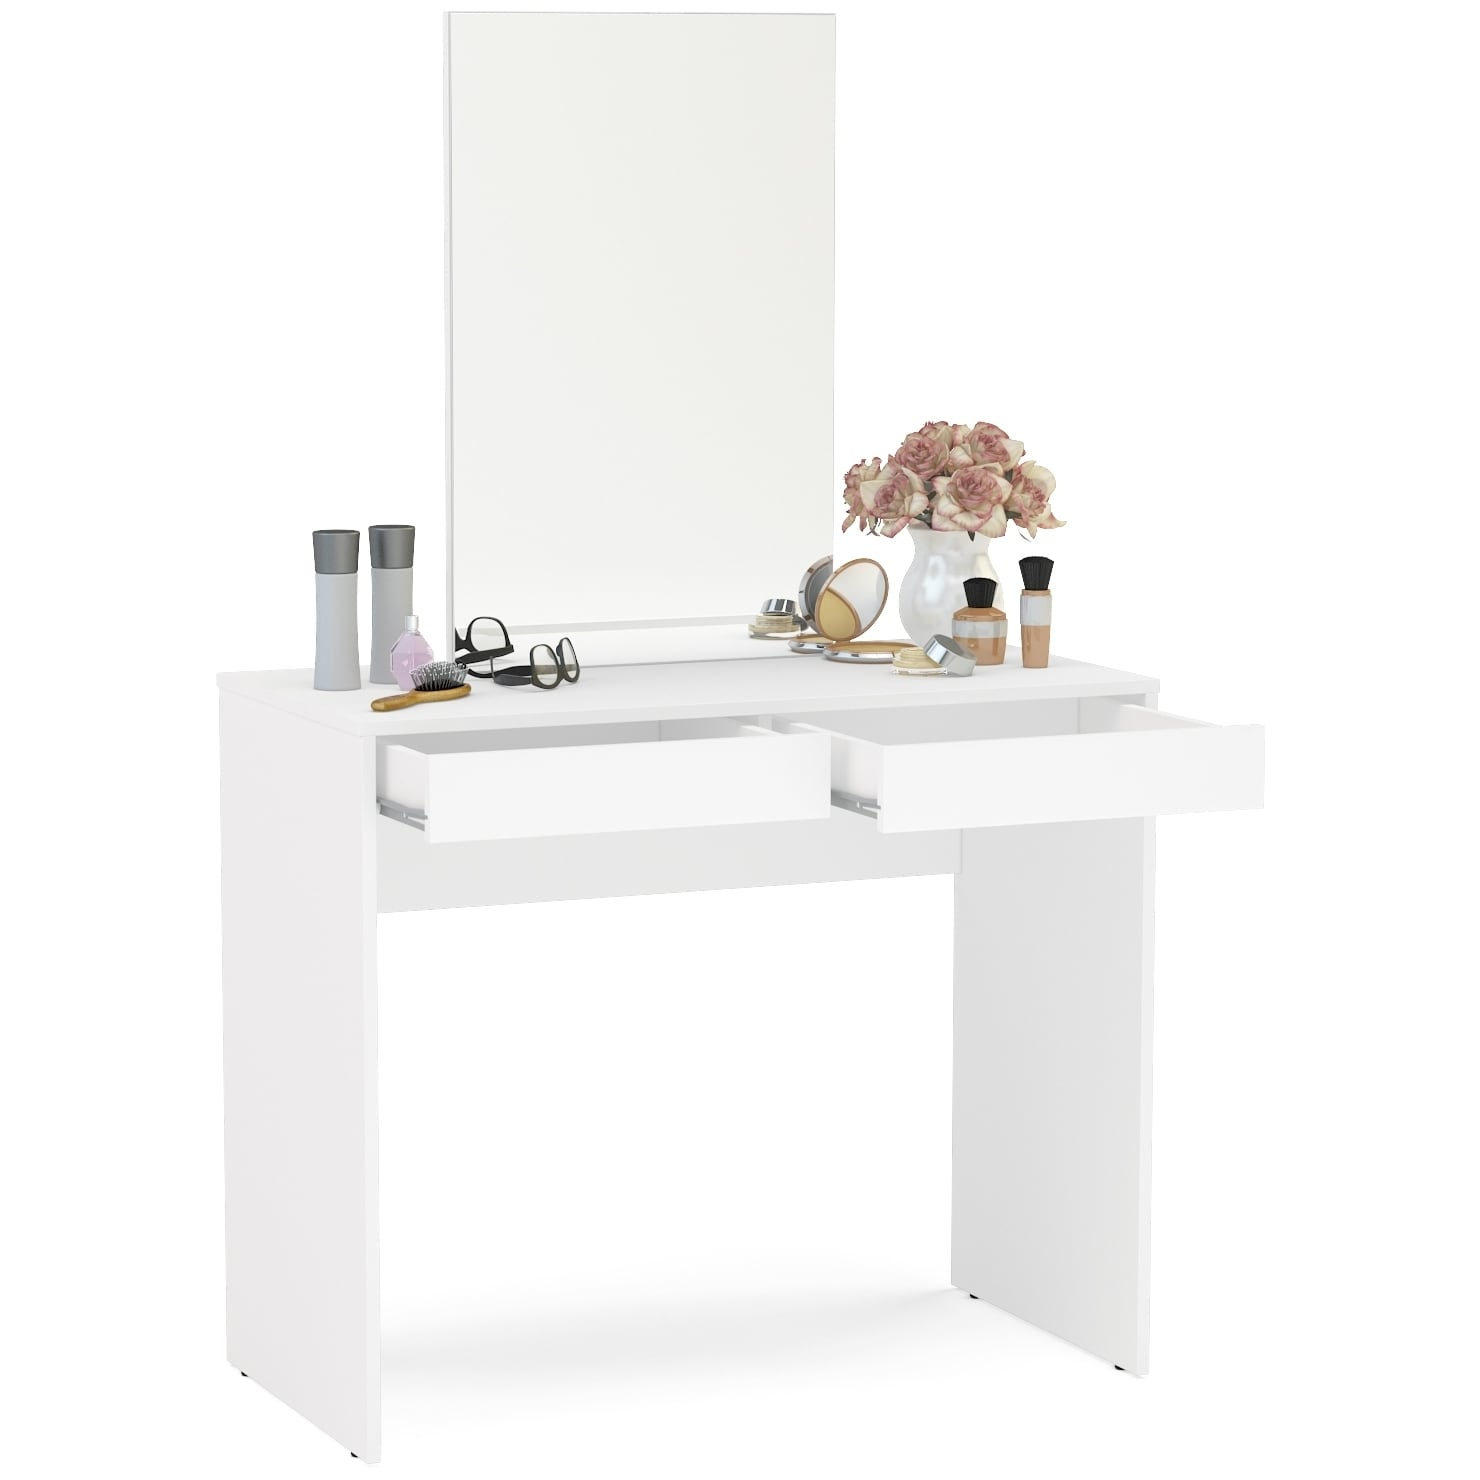 Buy 18 to 34 Inches Bathroom Vanities & Vanity Cabinets Online at ...